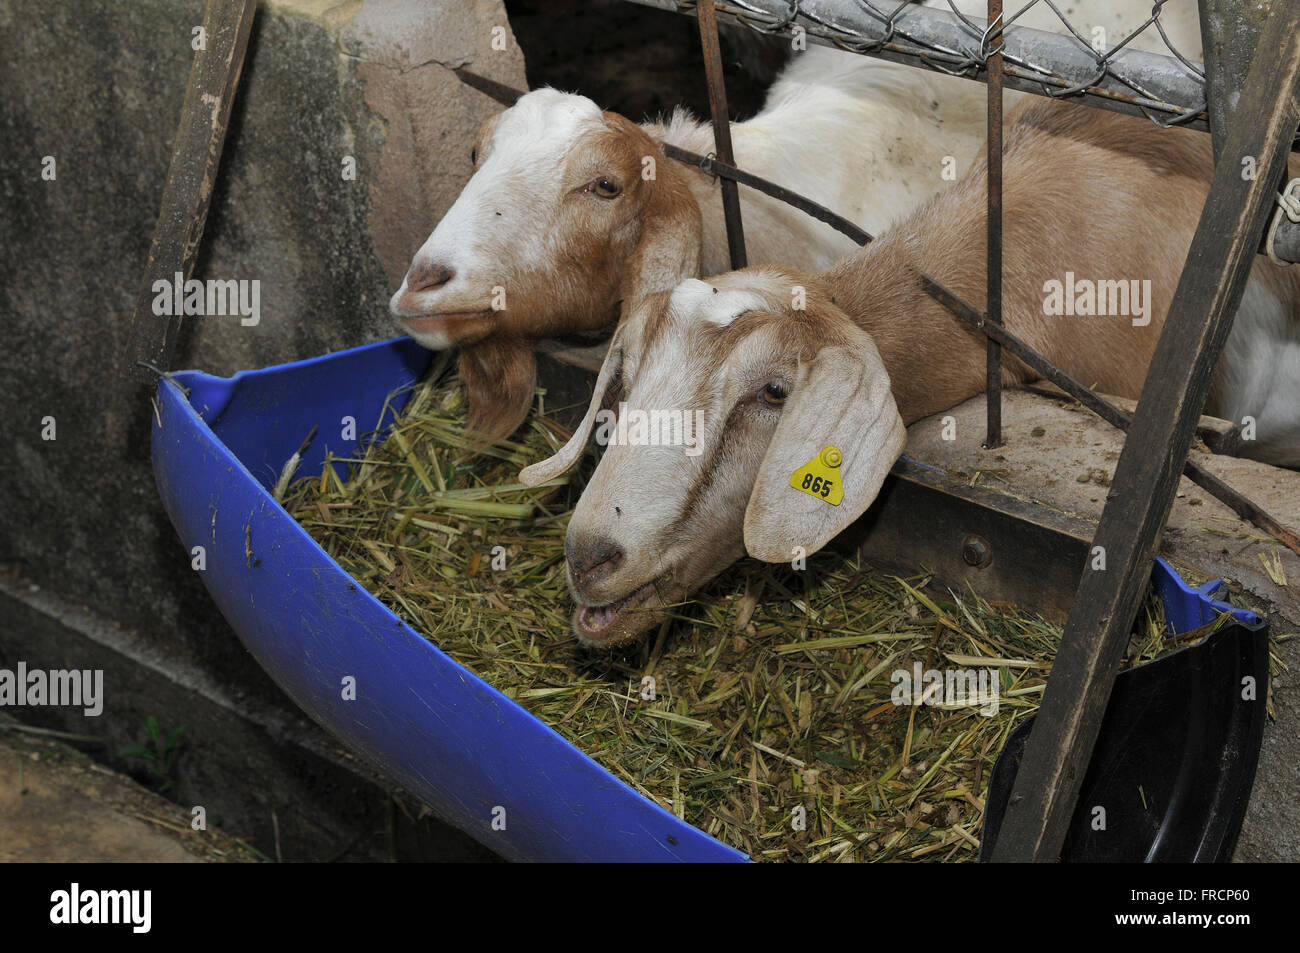 Intersection of Saanen goats and boer trough in corral - Stock Image